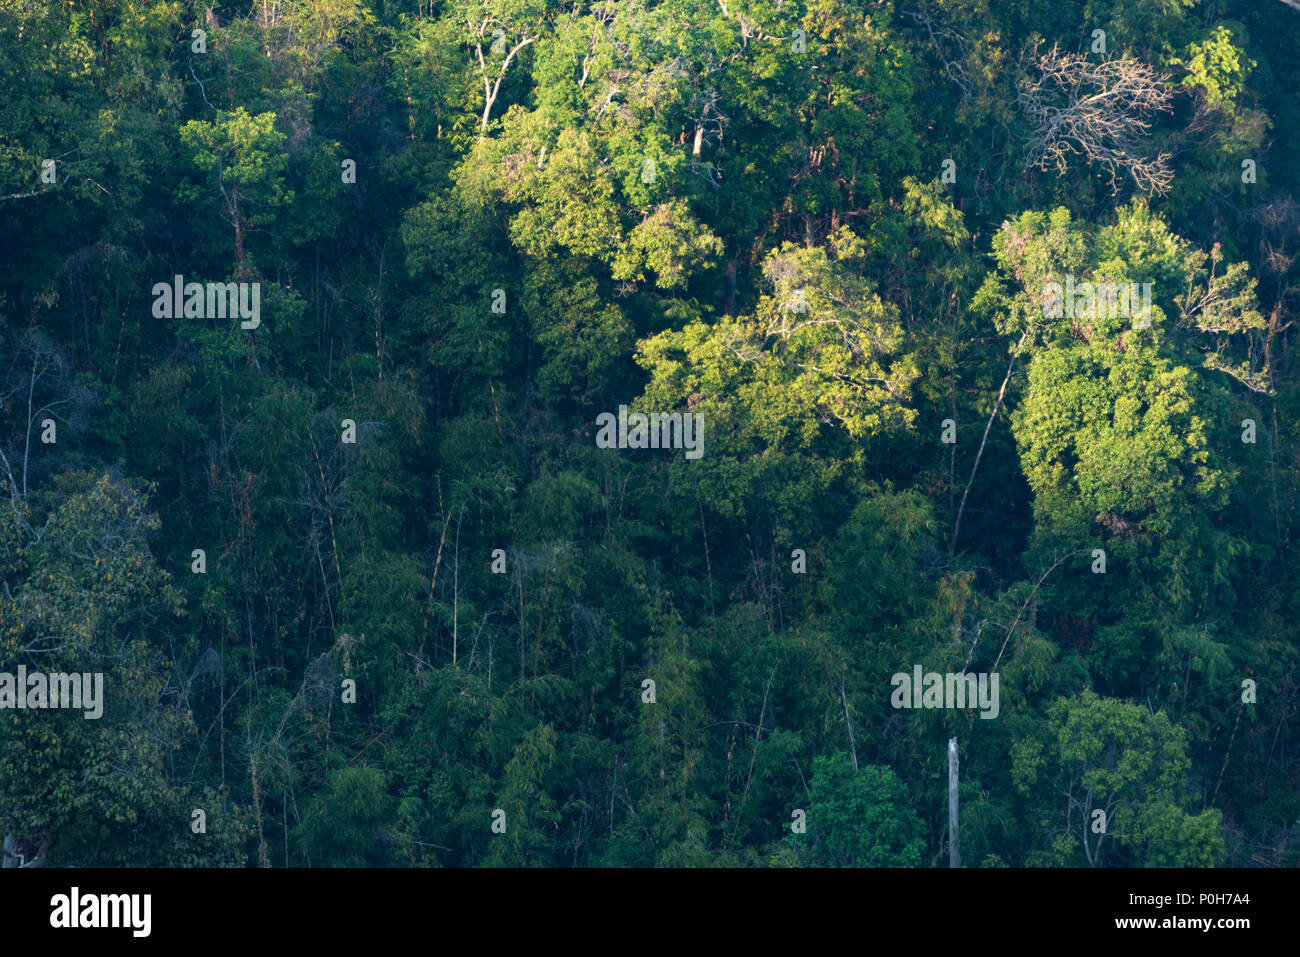 Tropical Evergreen Forest High Resolution Stock Photography And Images Alamy A tropical evergreen broadleaf forest. https www alamy com the atmosphere of tropical evergreen forest in the evening with the sun light image206903372 html